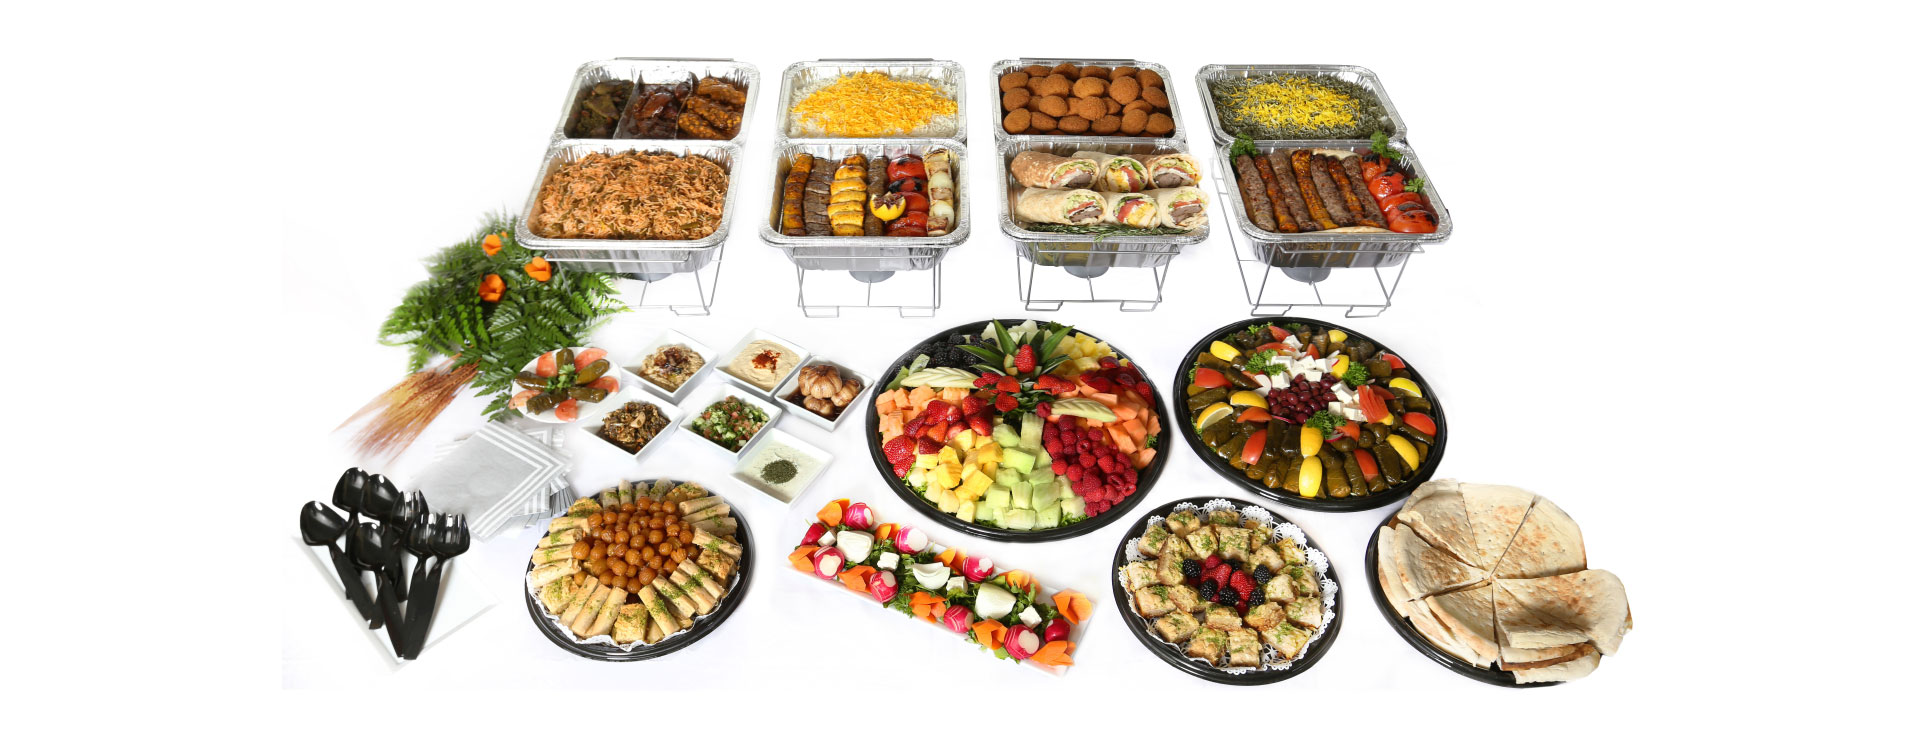 Moby Dick catering kabob platter, fruit platter, and dessert platter